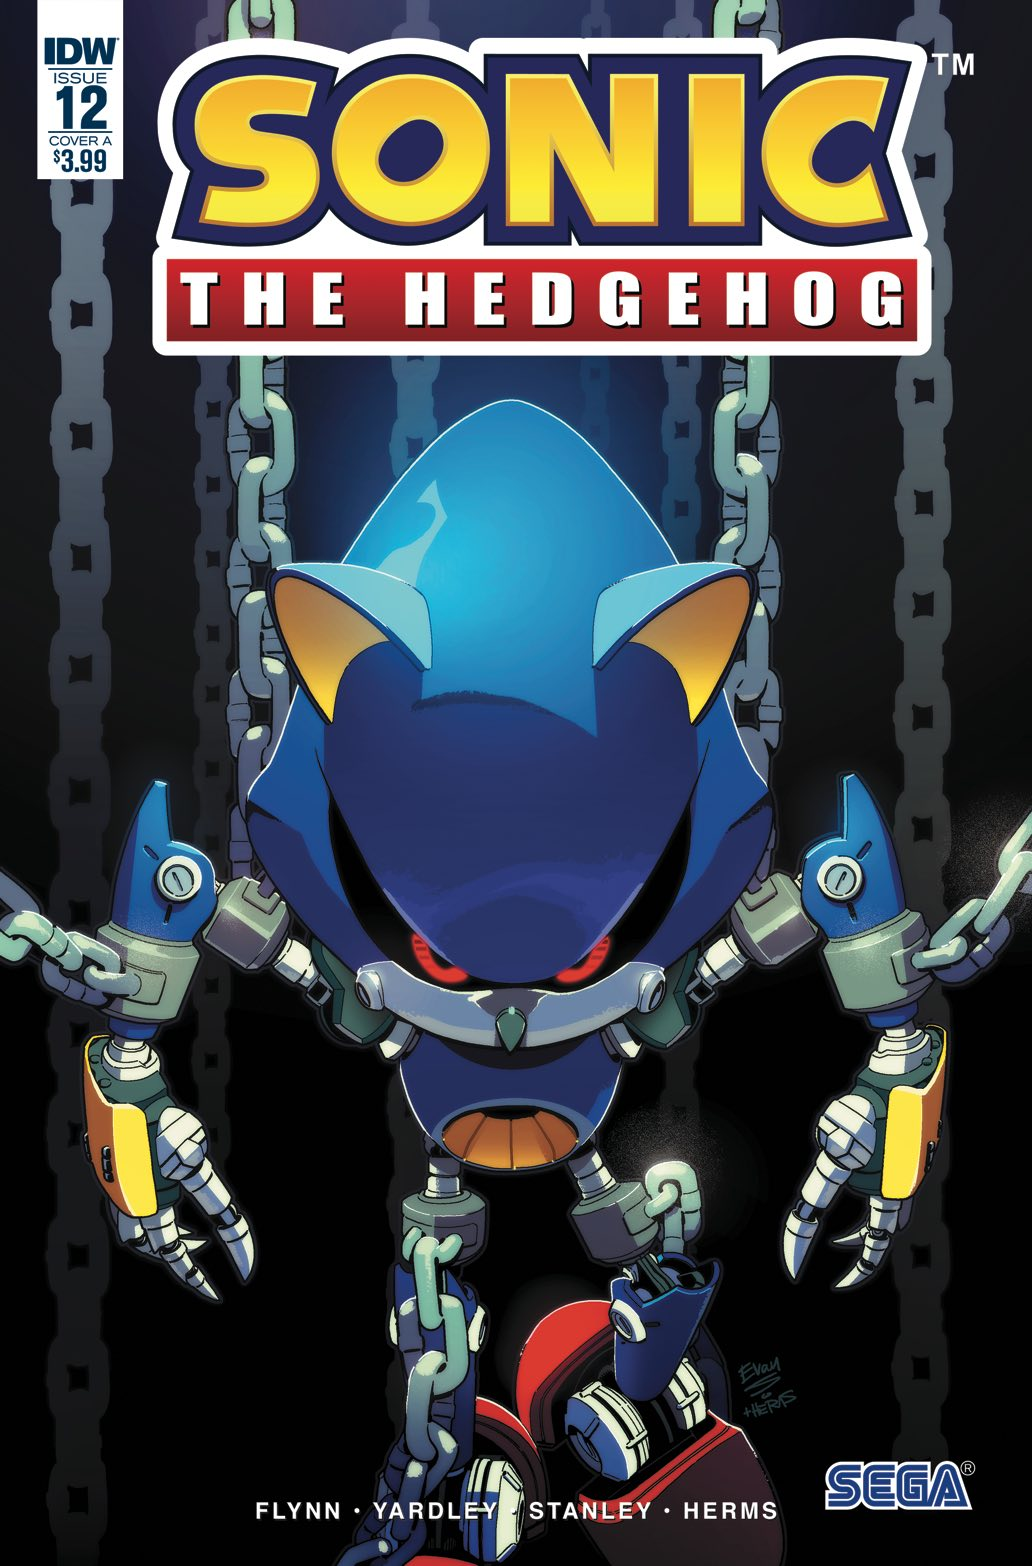 Sonic the Hedgehog IDW Publishing Issue 12 Metal